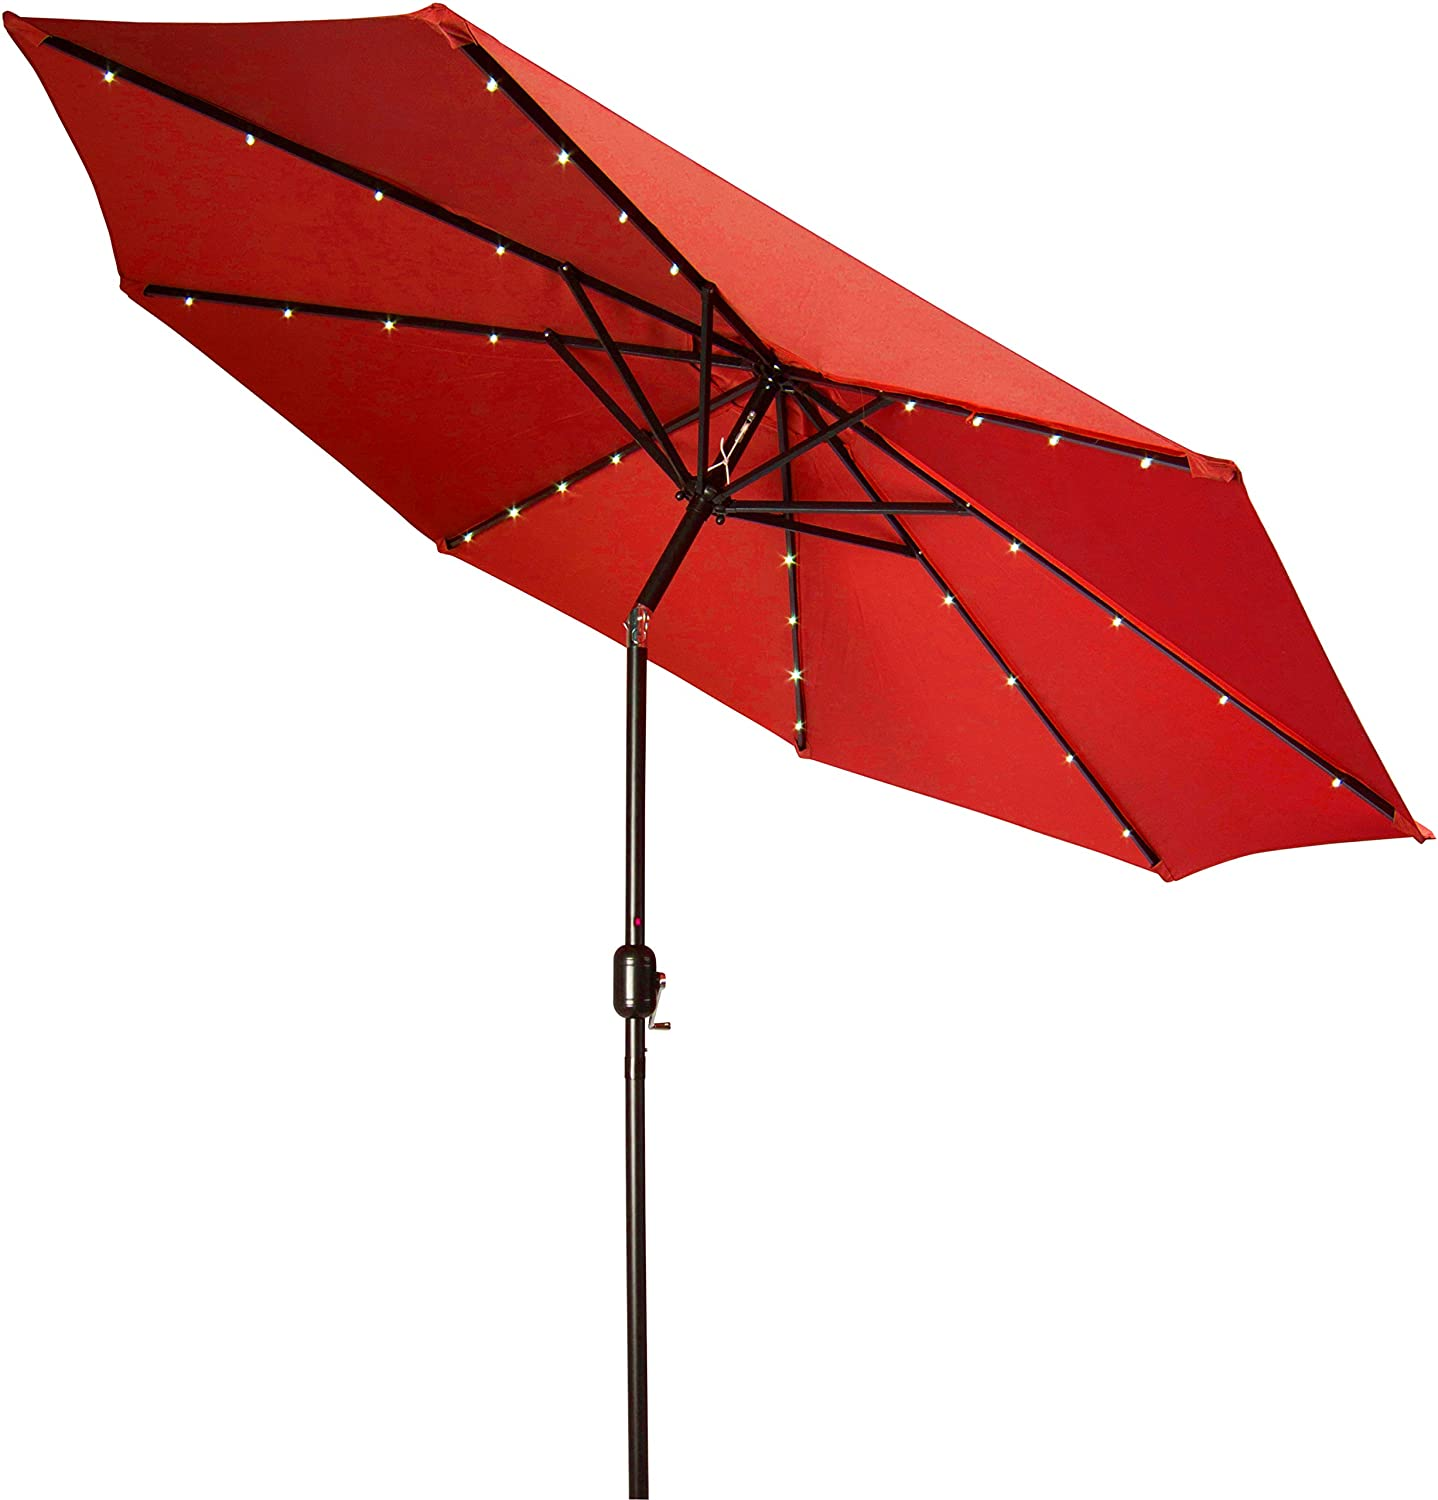 Delicieux Amazon.com : Deluxe Solar Powered LED Lighted Patio Umbrella   9u0027   By  Trademark Innovations (Red) : Garden U0026 Outdoor